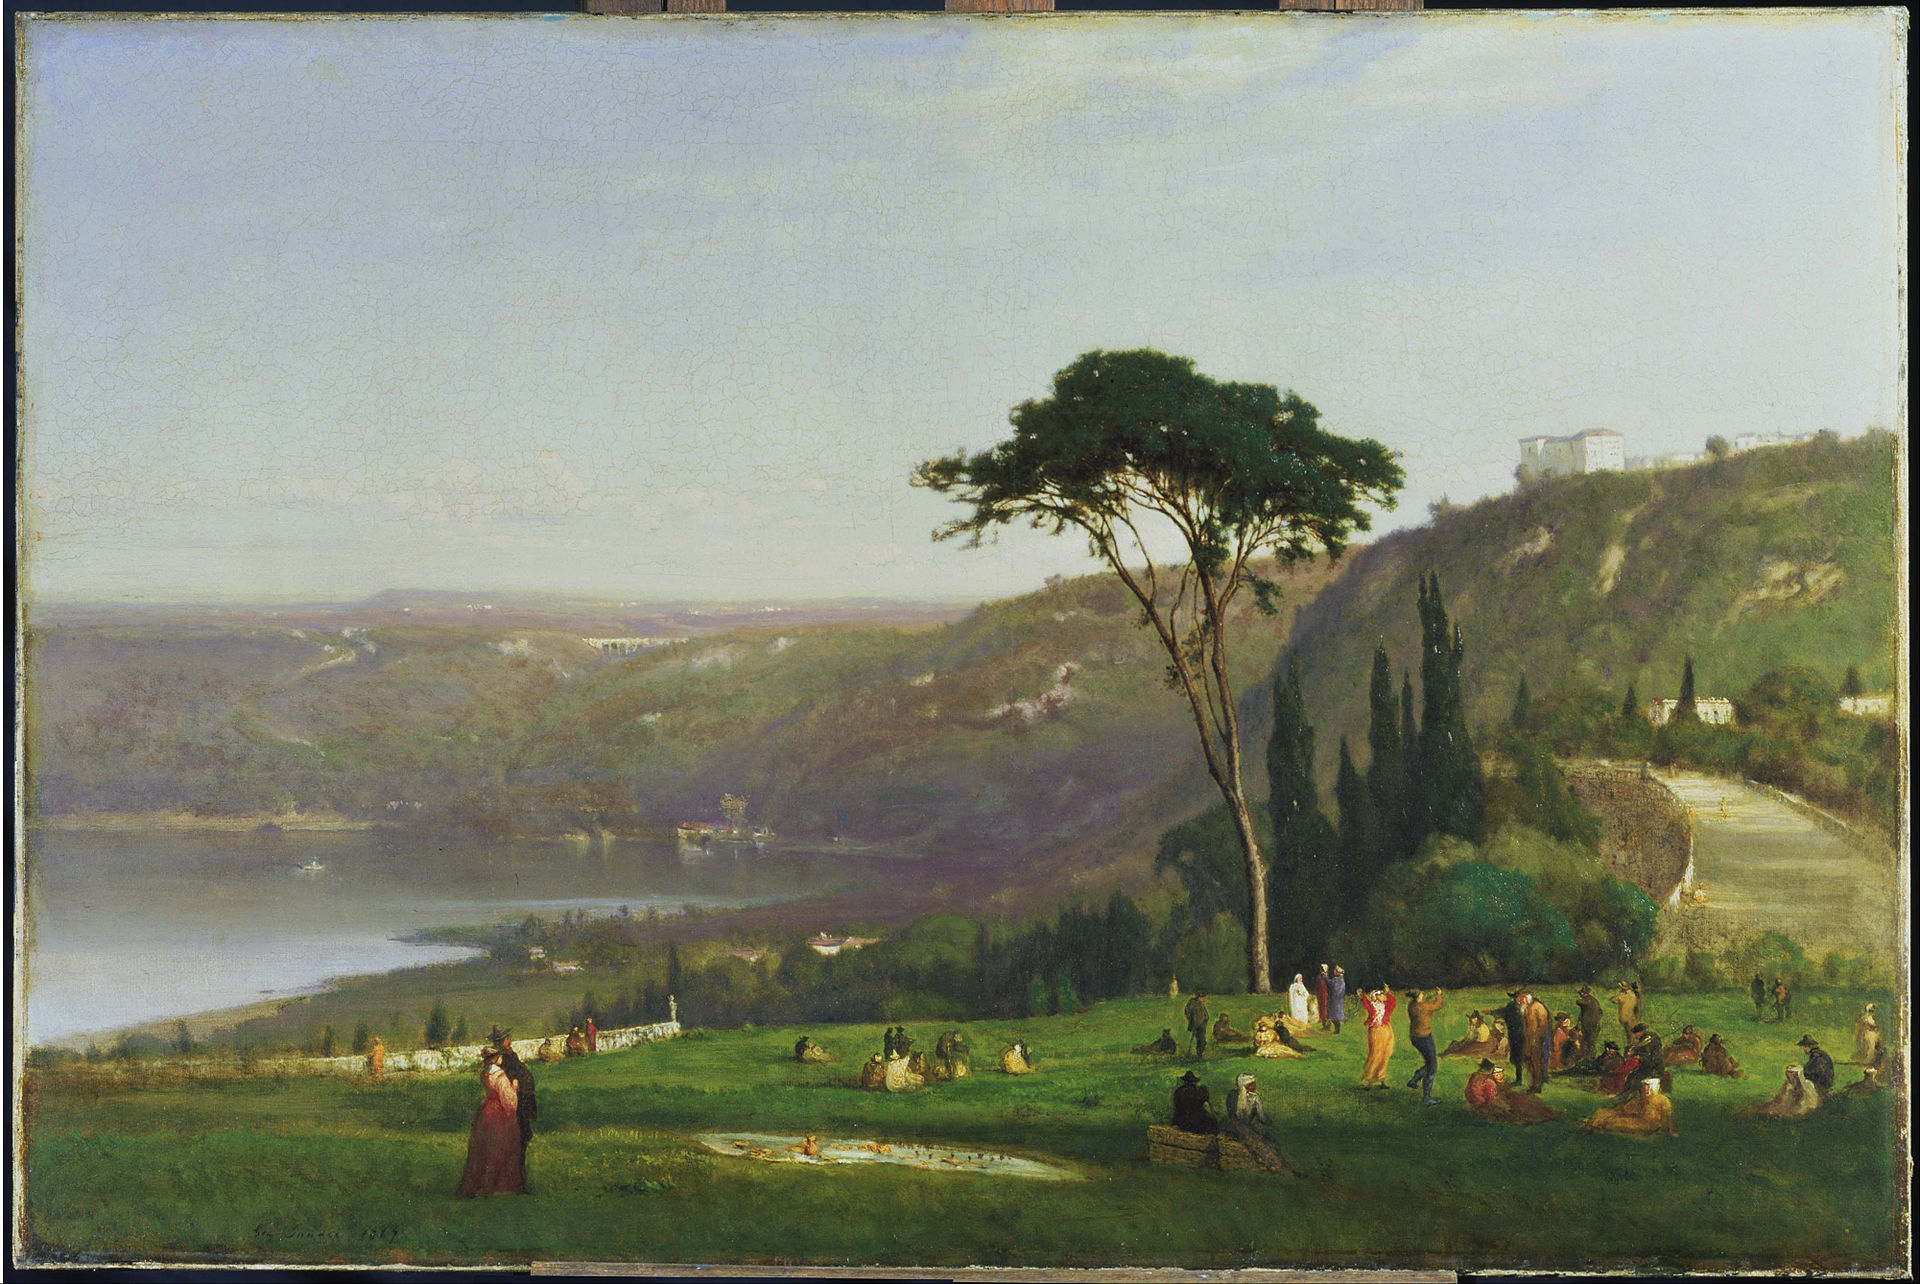 George_Inness_-_Lake_Albano_-_Google_Art_Project.jpg